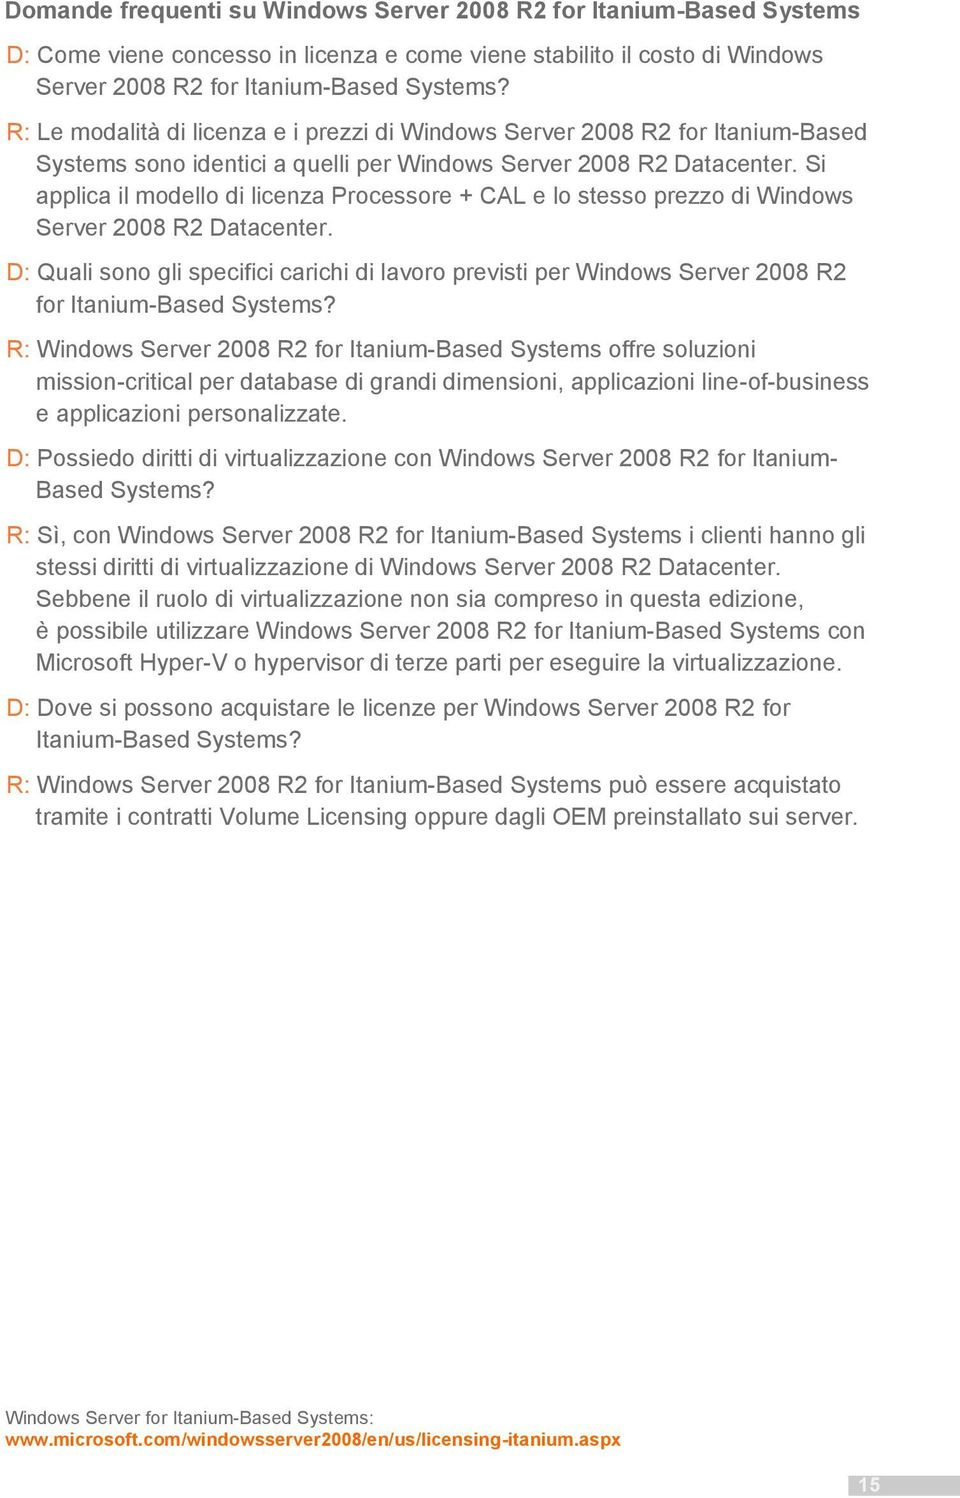 Si applica il modello di licenza Processore + CAL e lo stesso prezzo di Windows Server 2008 R2 Datacenter.